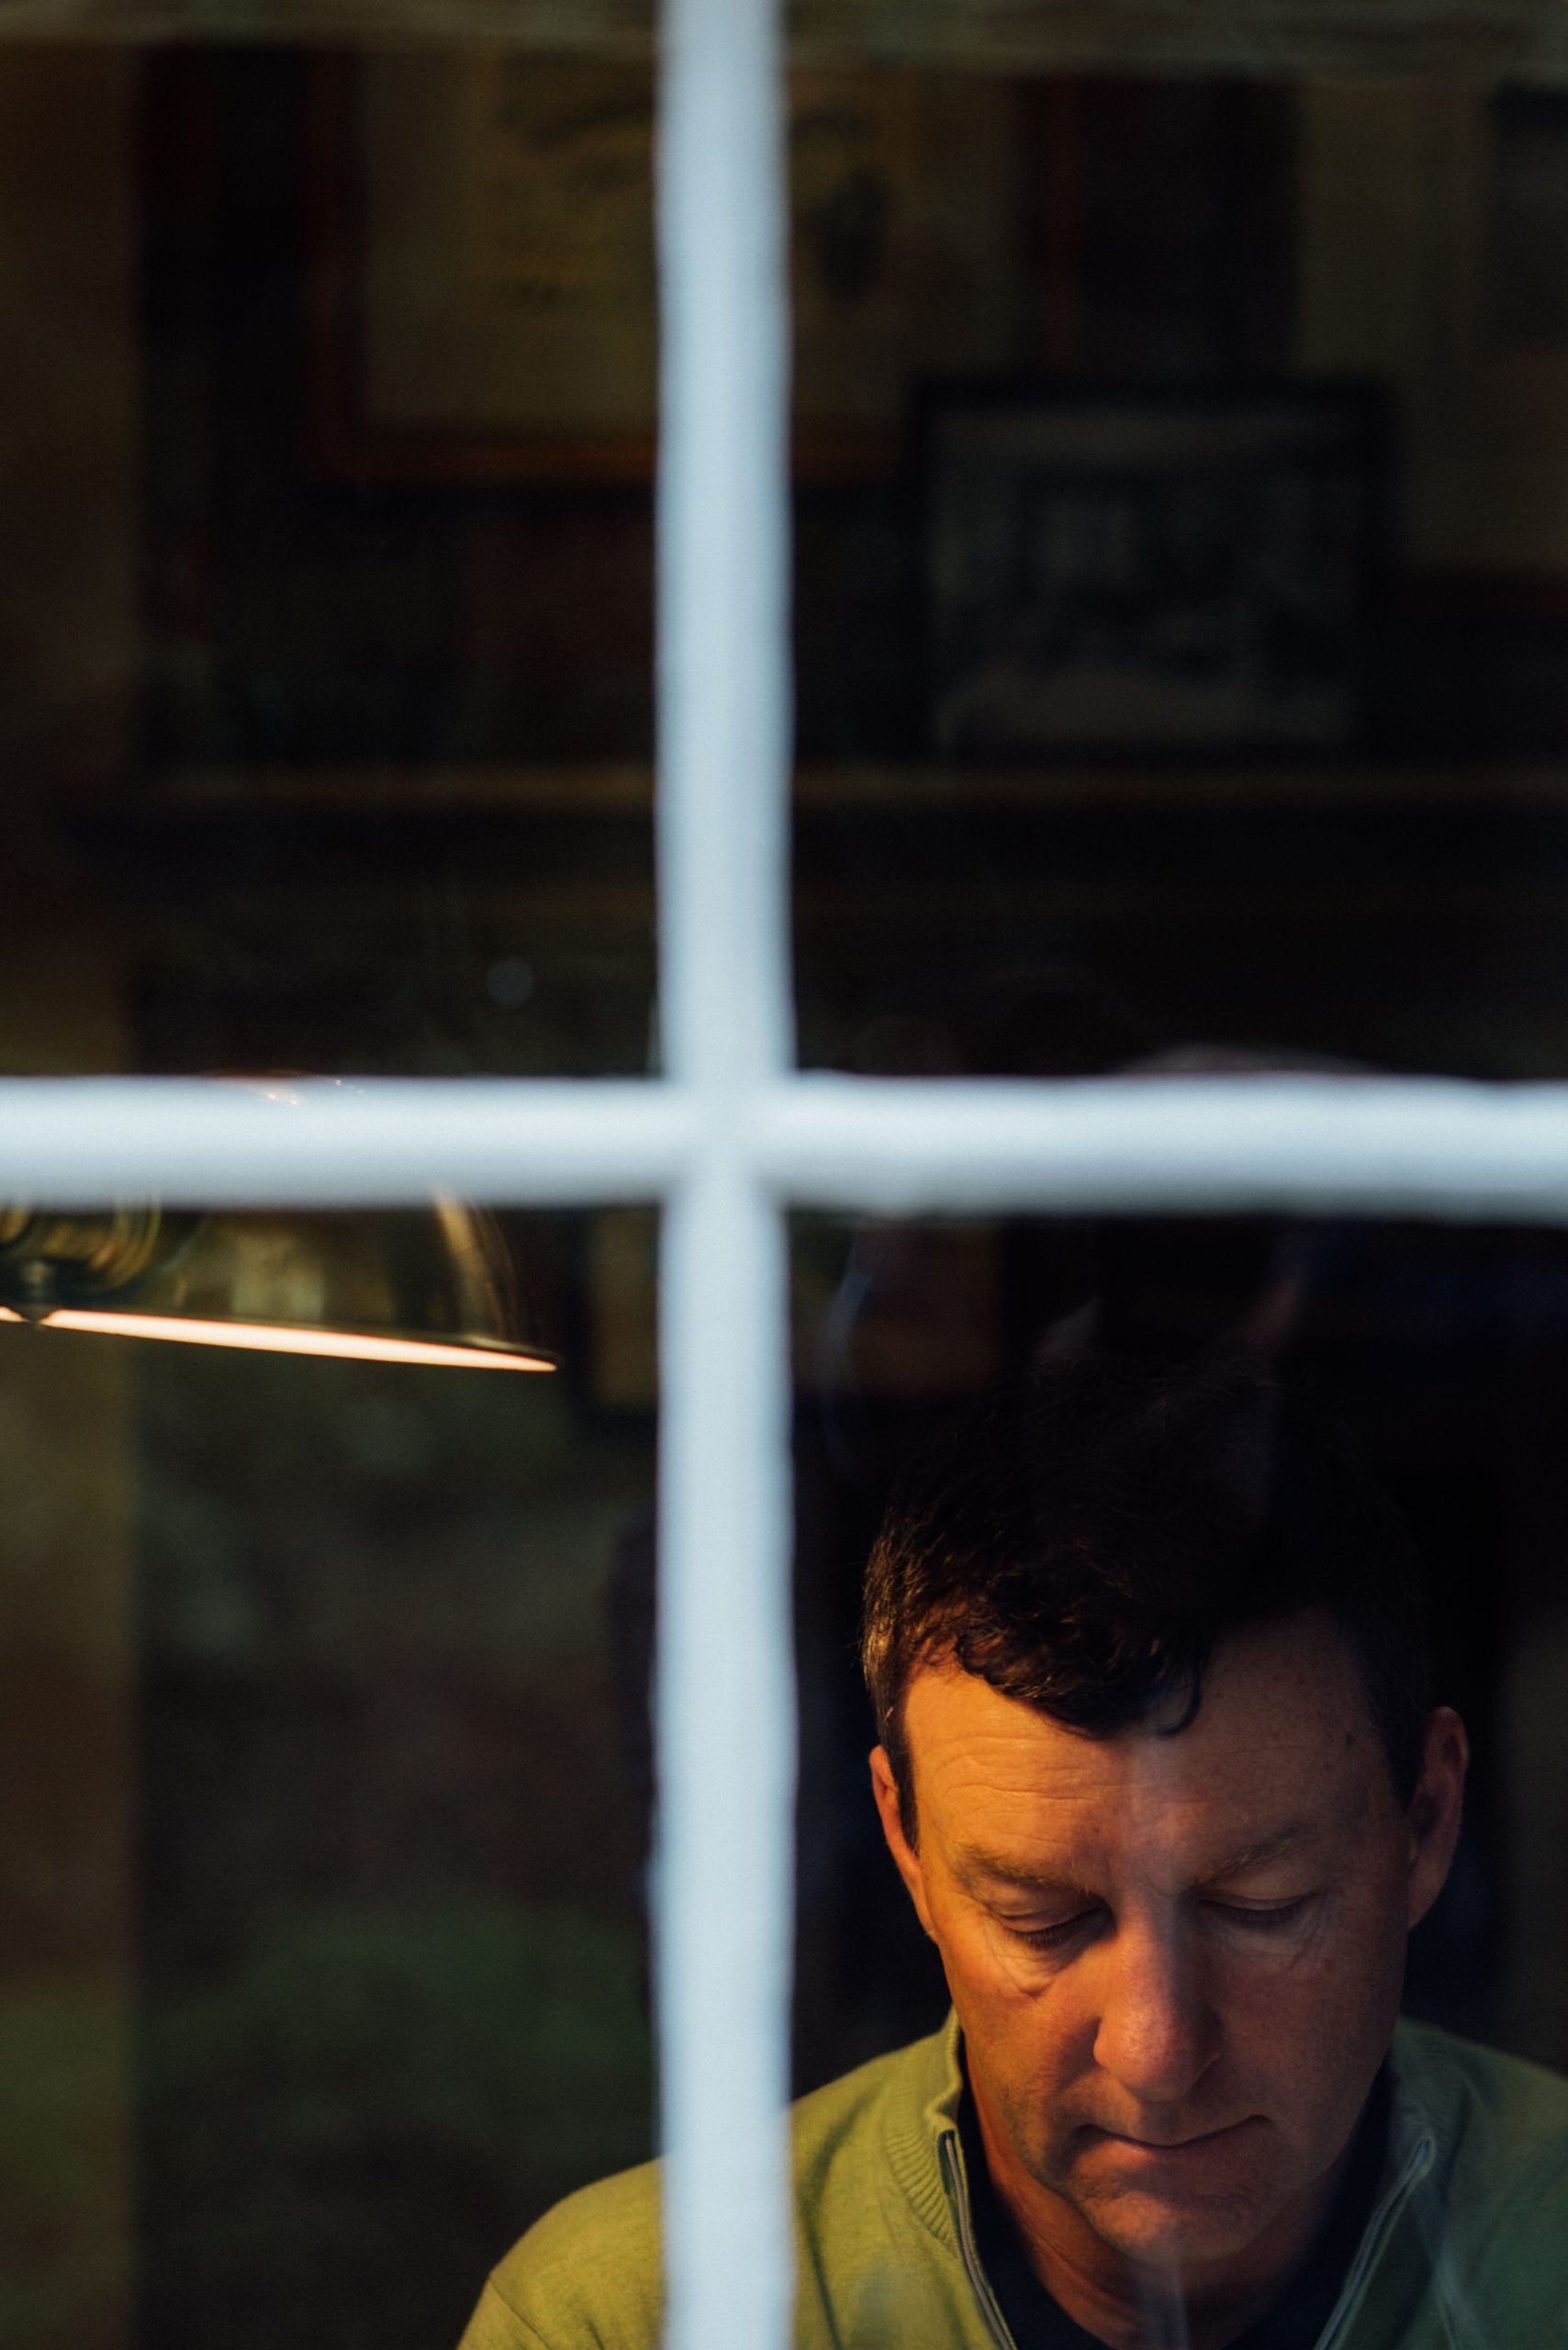 Phoeo of Gil Hanse through a window. Photo by Christian Hafer.